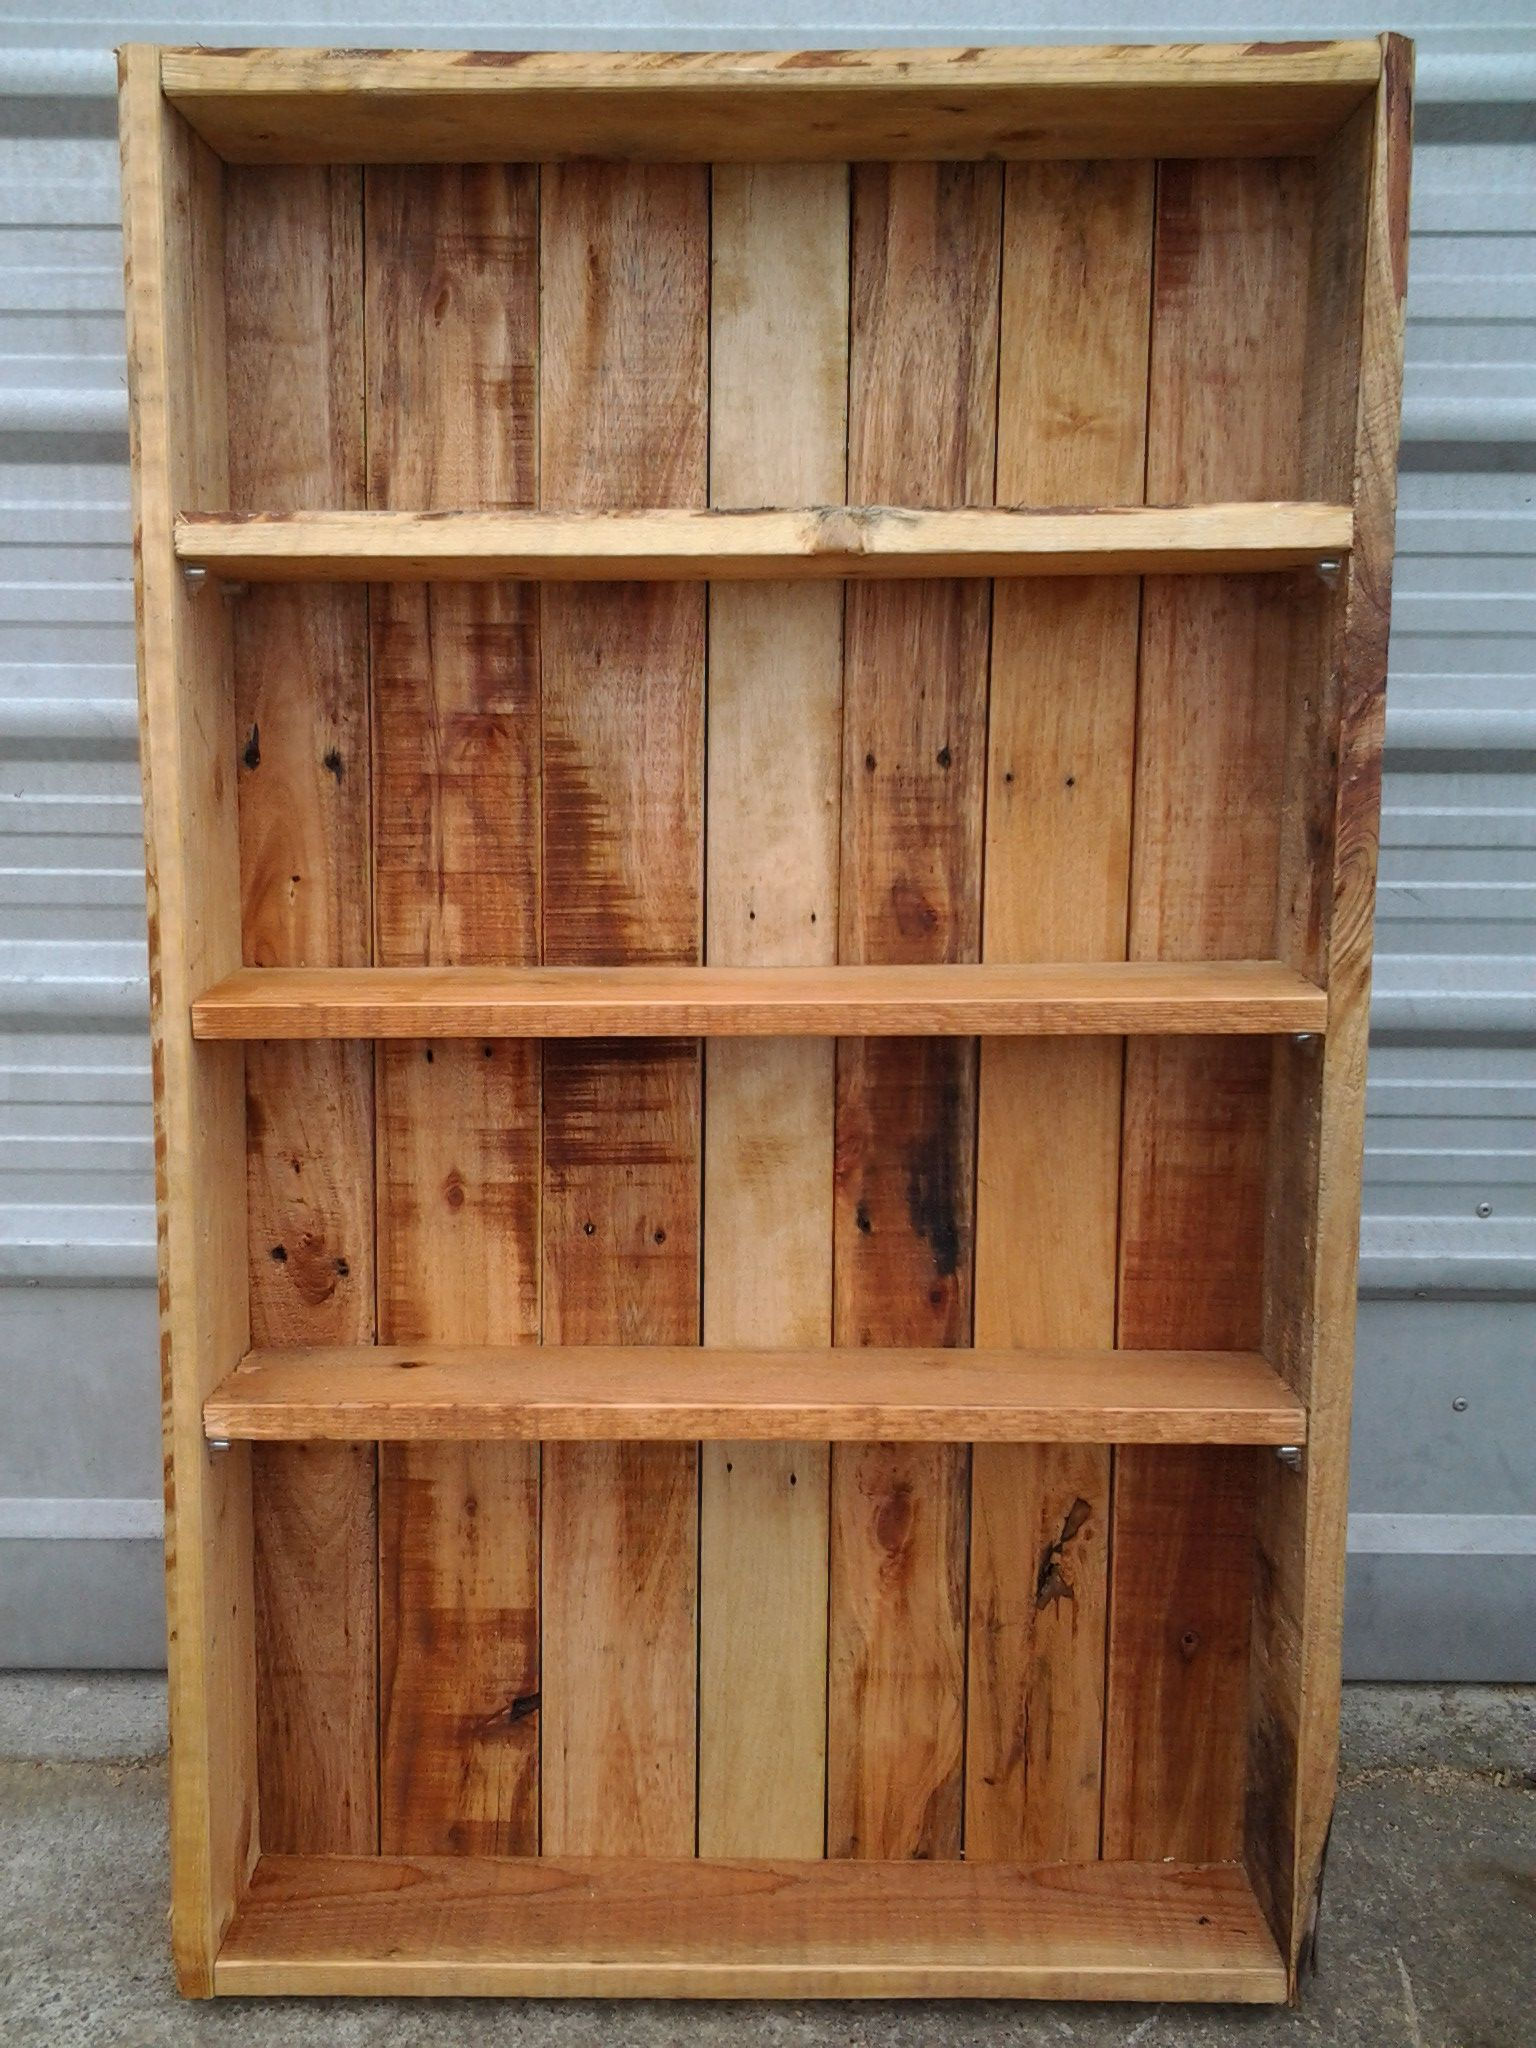 Garage Shelves Made From Pallet Wood Lightly Sanded And Oiled,